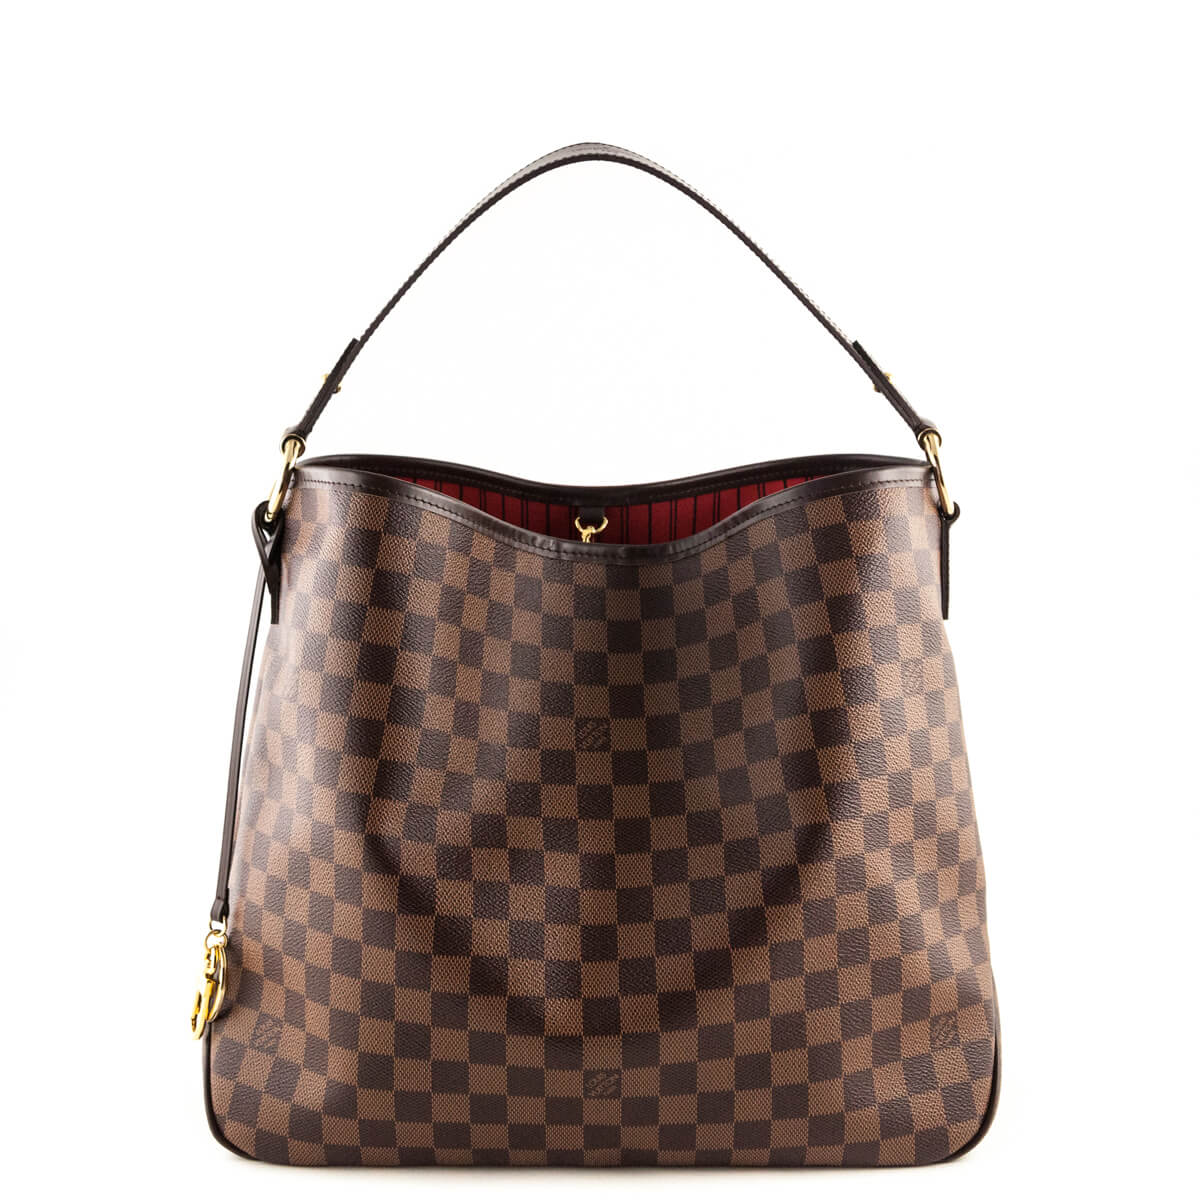 Louis Vuitton Damier Ebene Delightful MM - LOVE that BAG - Preowned  Authentic Designer Handbags ... 6bad550957